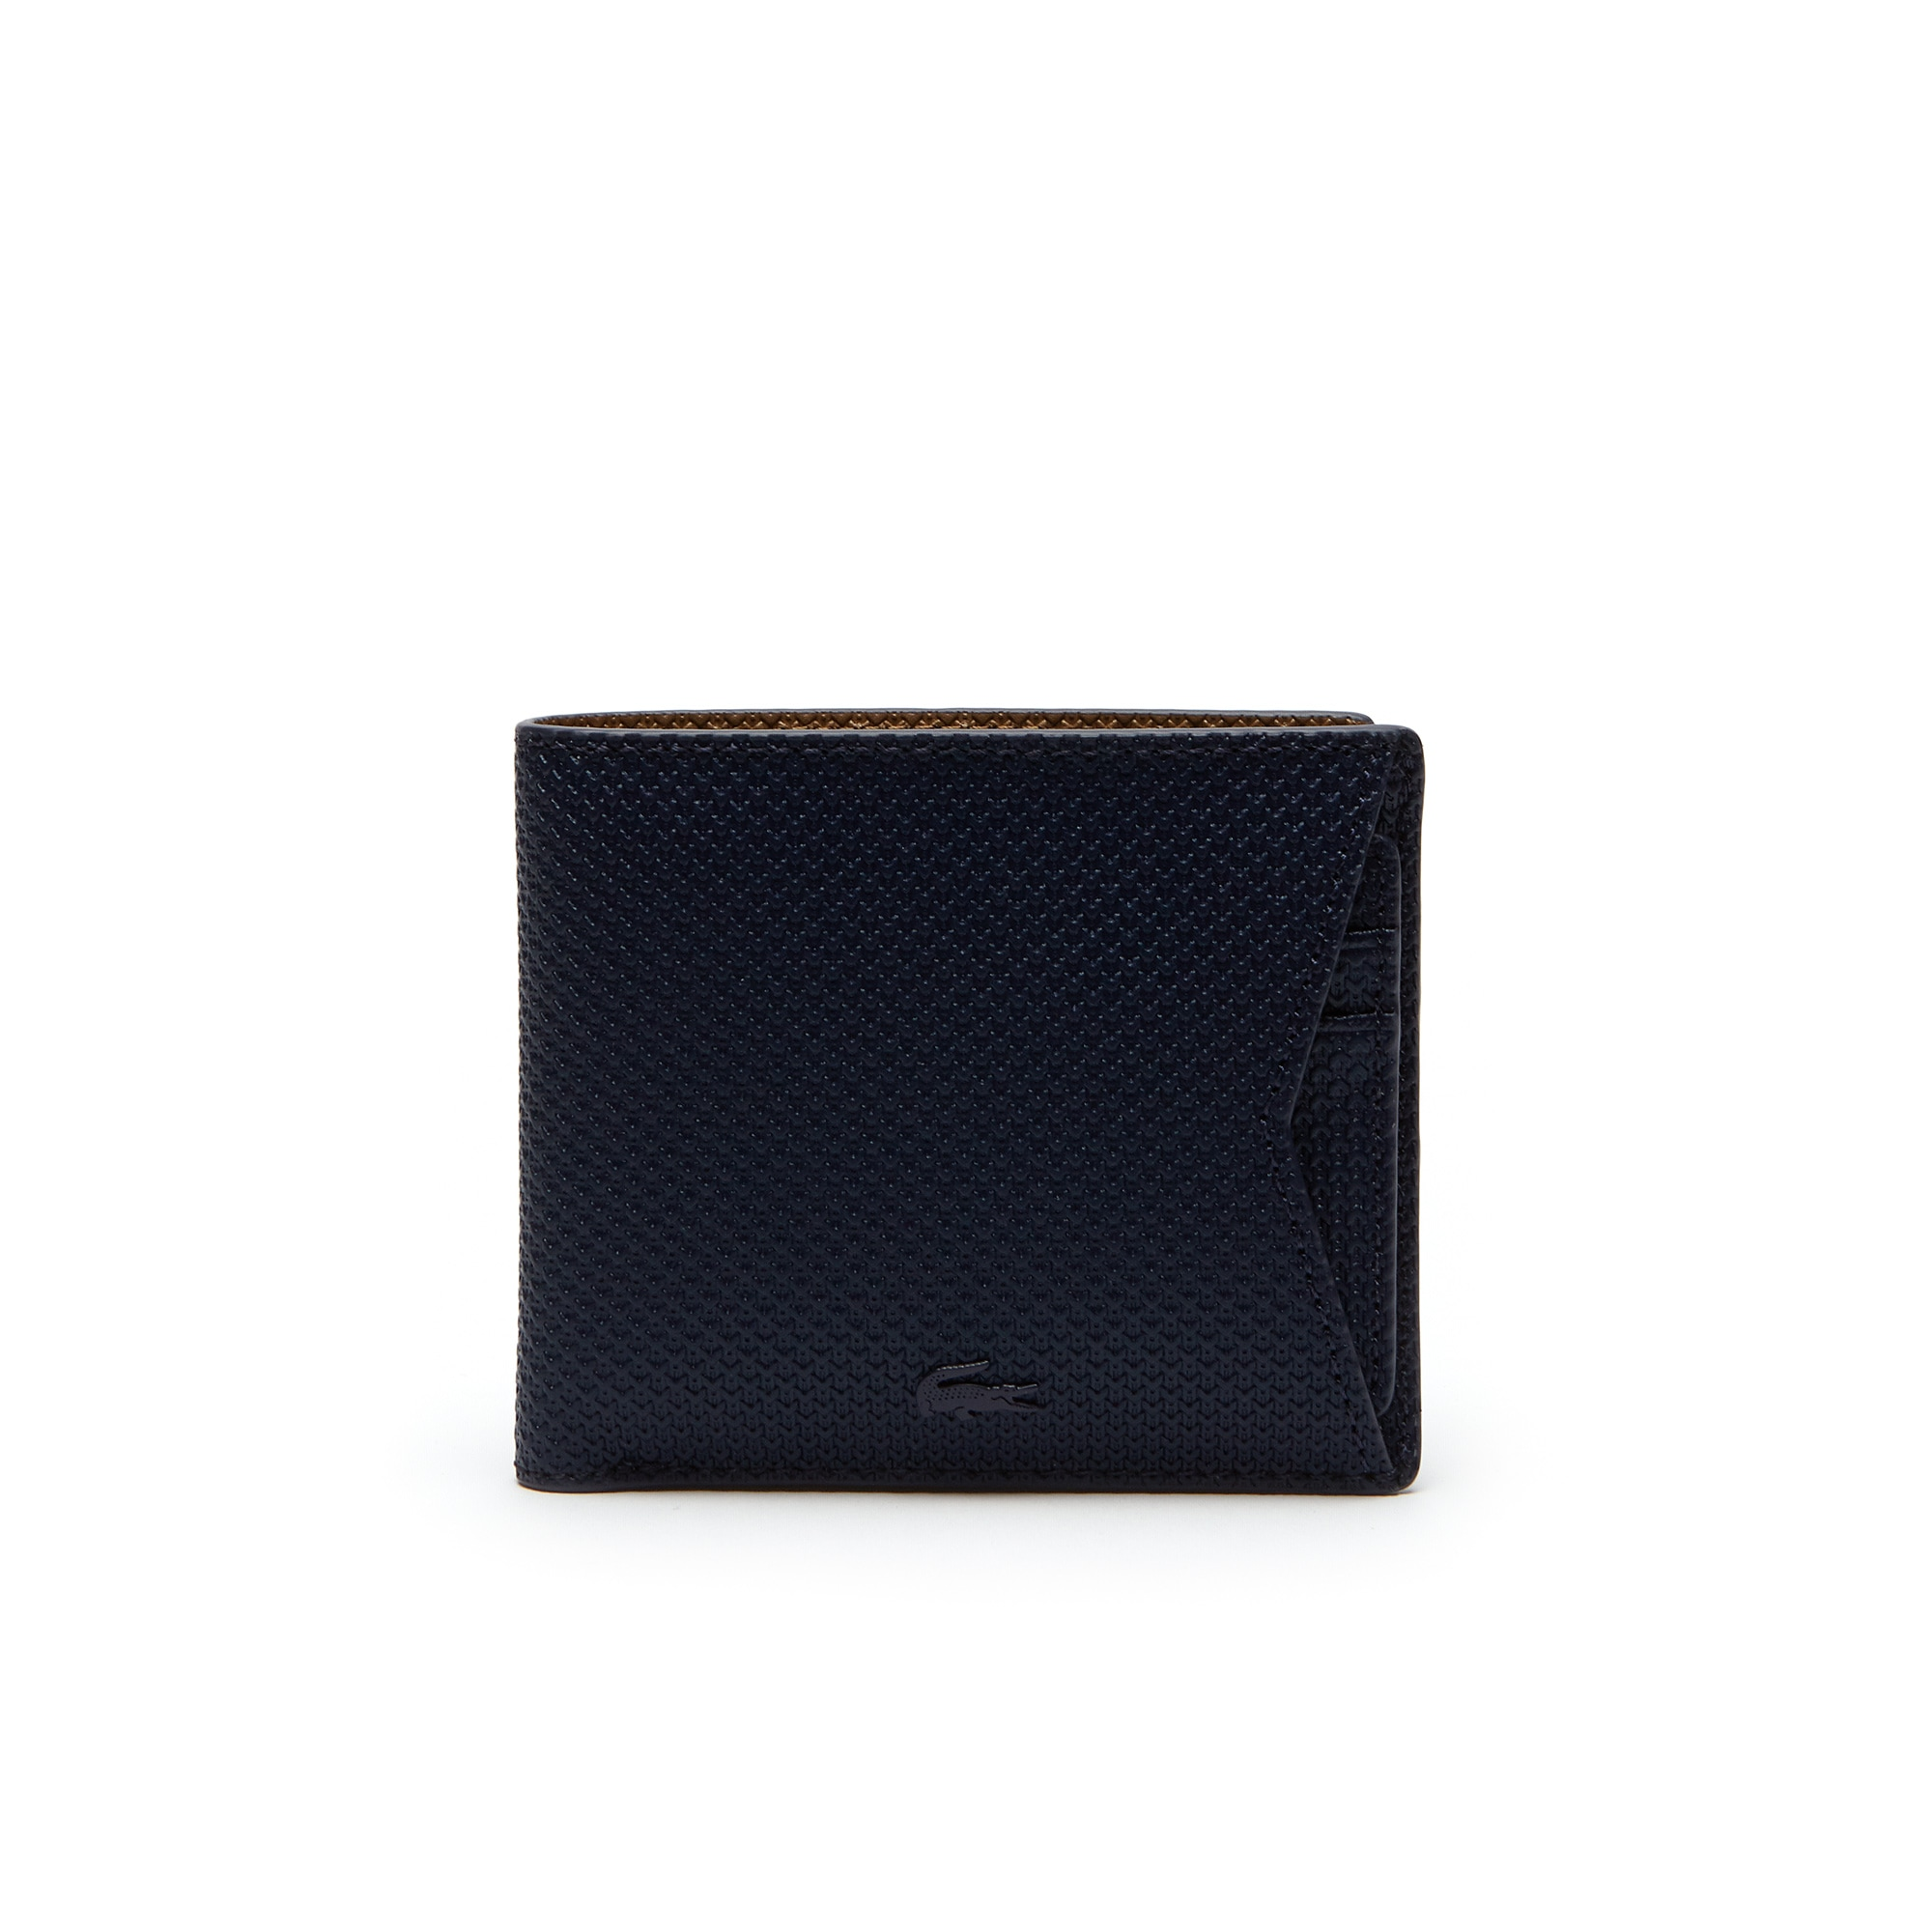 03f7b5122d LACOSTE. MEN'S CHANTACO MONOCHROME COATED LEATHER WALLET WITH CARD HOLDER